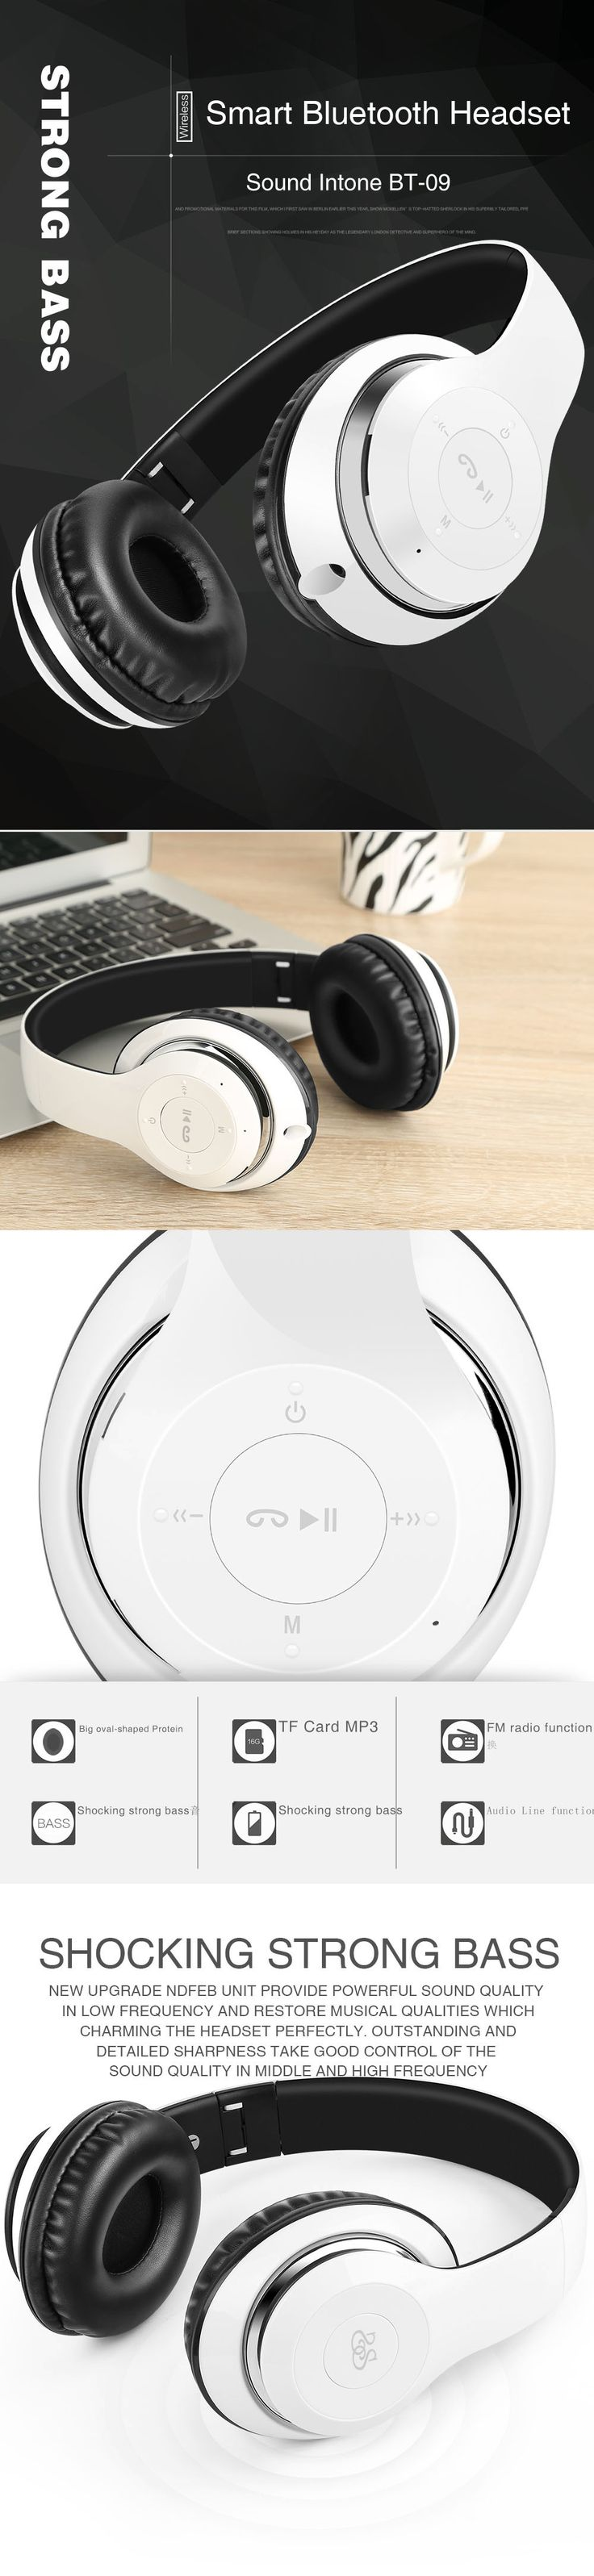 Sound Intone BT-09 Bluetooth Headphones Wireless Stereo Headsets earbuds with Mic Support TF Card FM Radio for iPhone Samsung   http://www.dealofthedaytips.com/products/sound-intone-bt-09-bluetooth-headphones-wireless-stereo-headsets-earbuds-with-mic-support-tf-card-fm-radio-for-iphone-samsung/